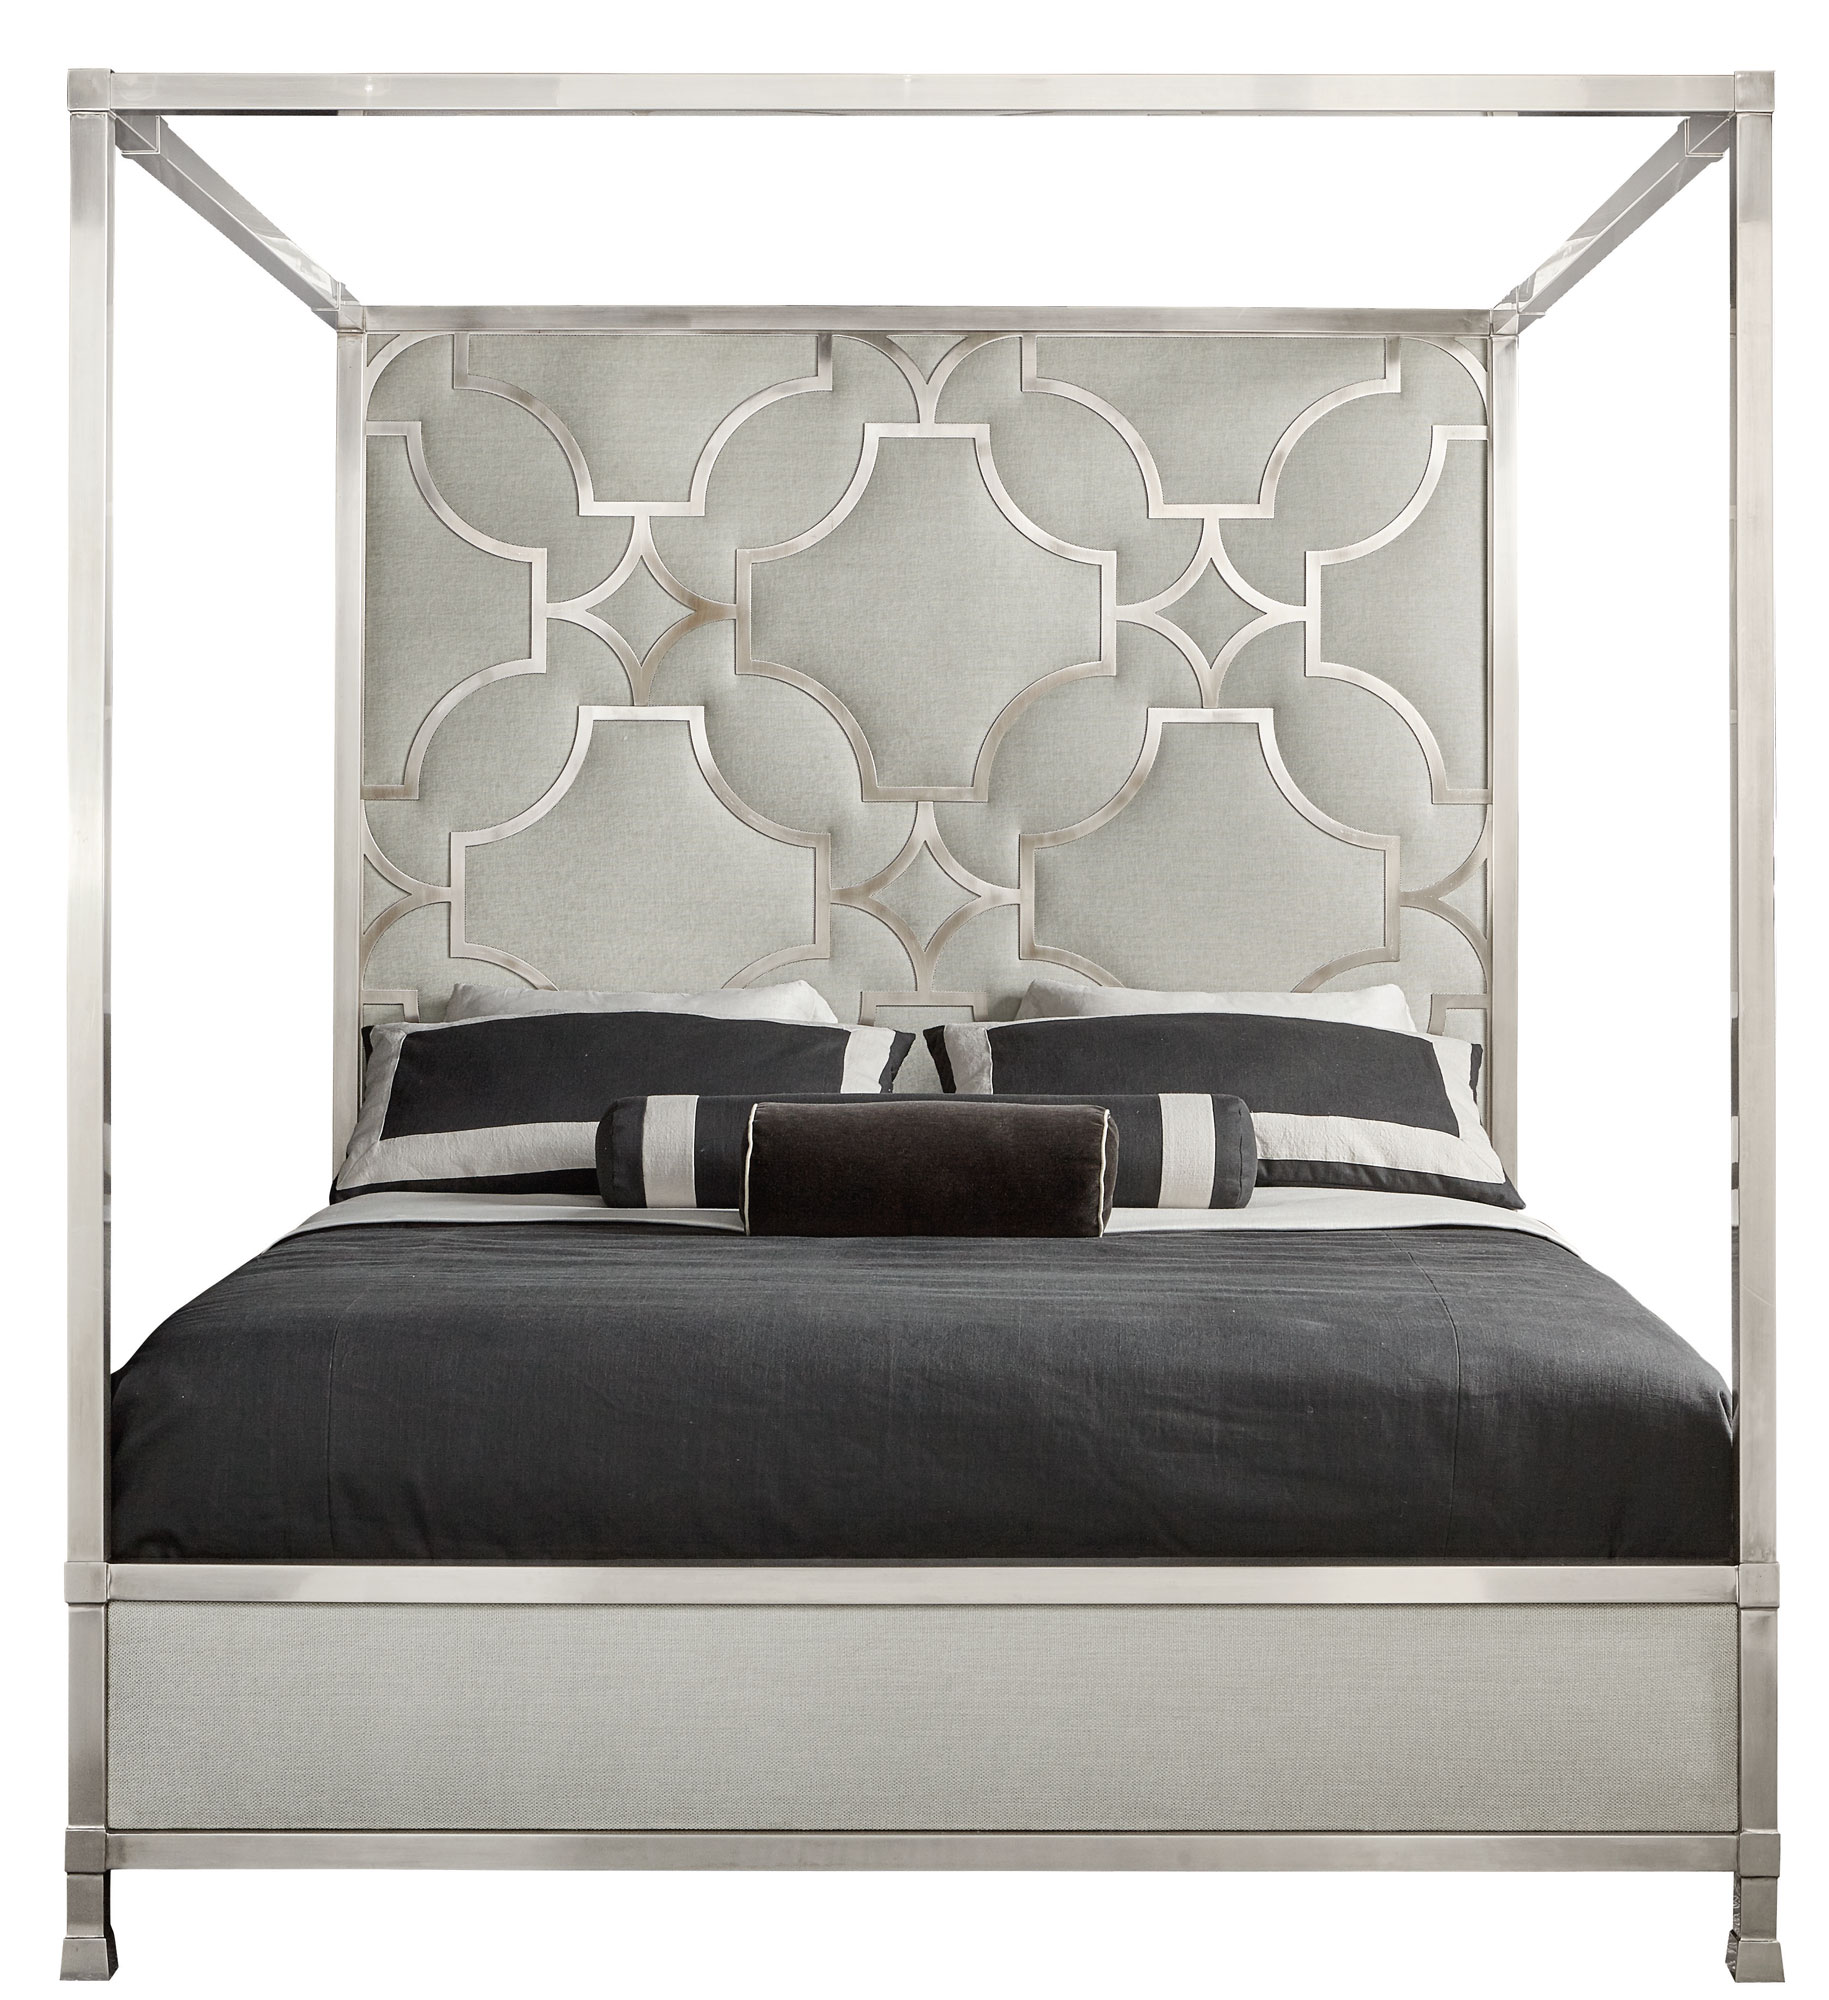 Domaine Blanc Upholstered Metal Canopy King Bed & Domaine Blanc Upholstered Metal Canopy King Bed - Beds - Bedroom ...